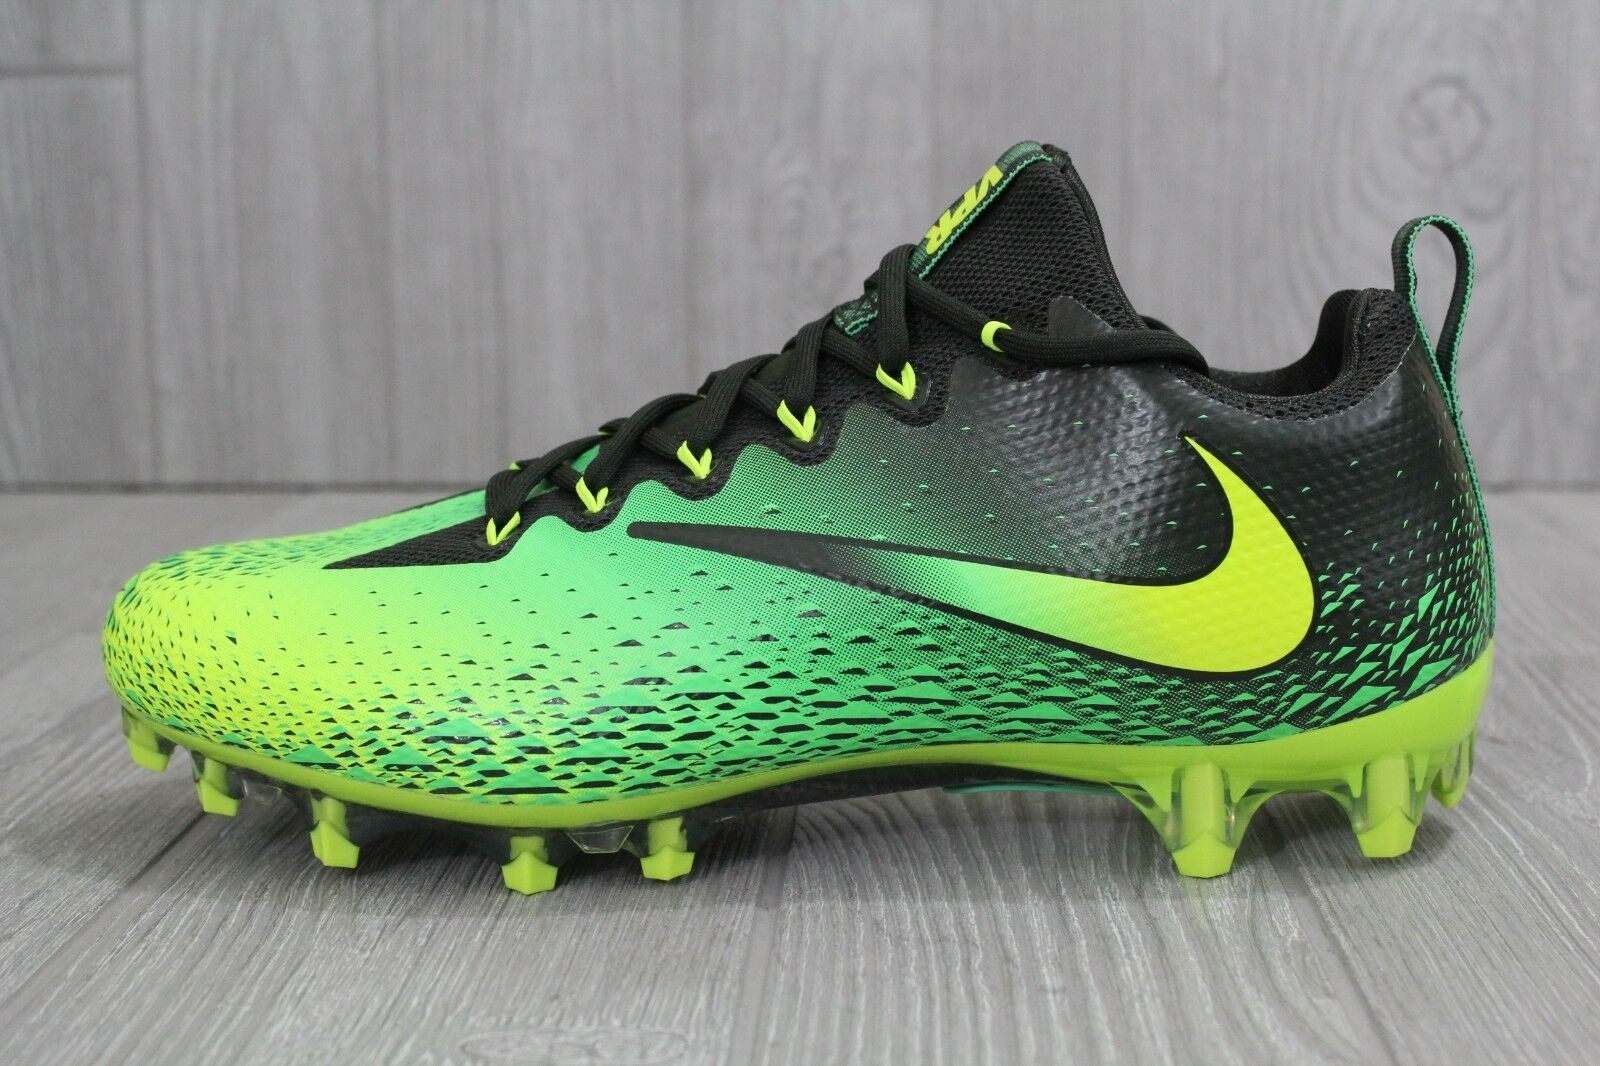 30 New Mens Nike Vapor Untouchable Pro Football Cleats Green 833385-373 10 - 11